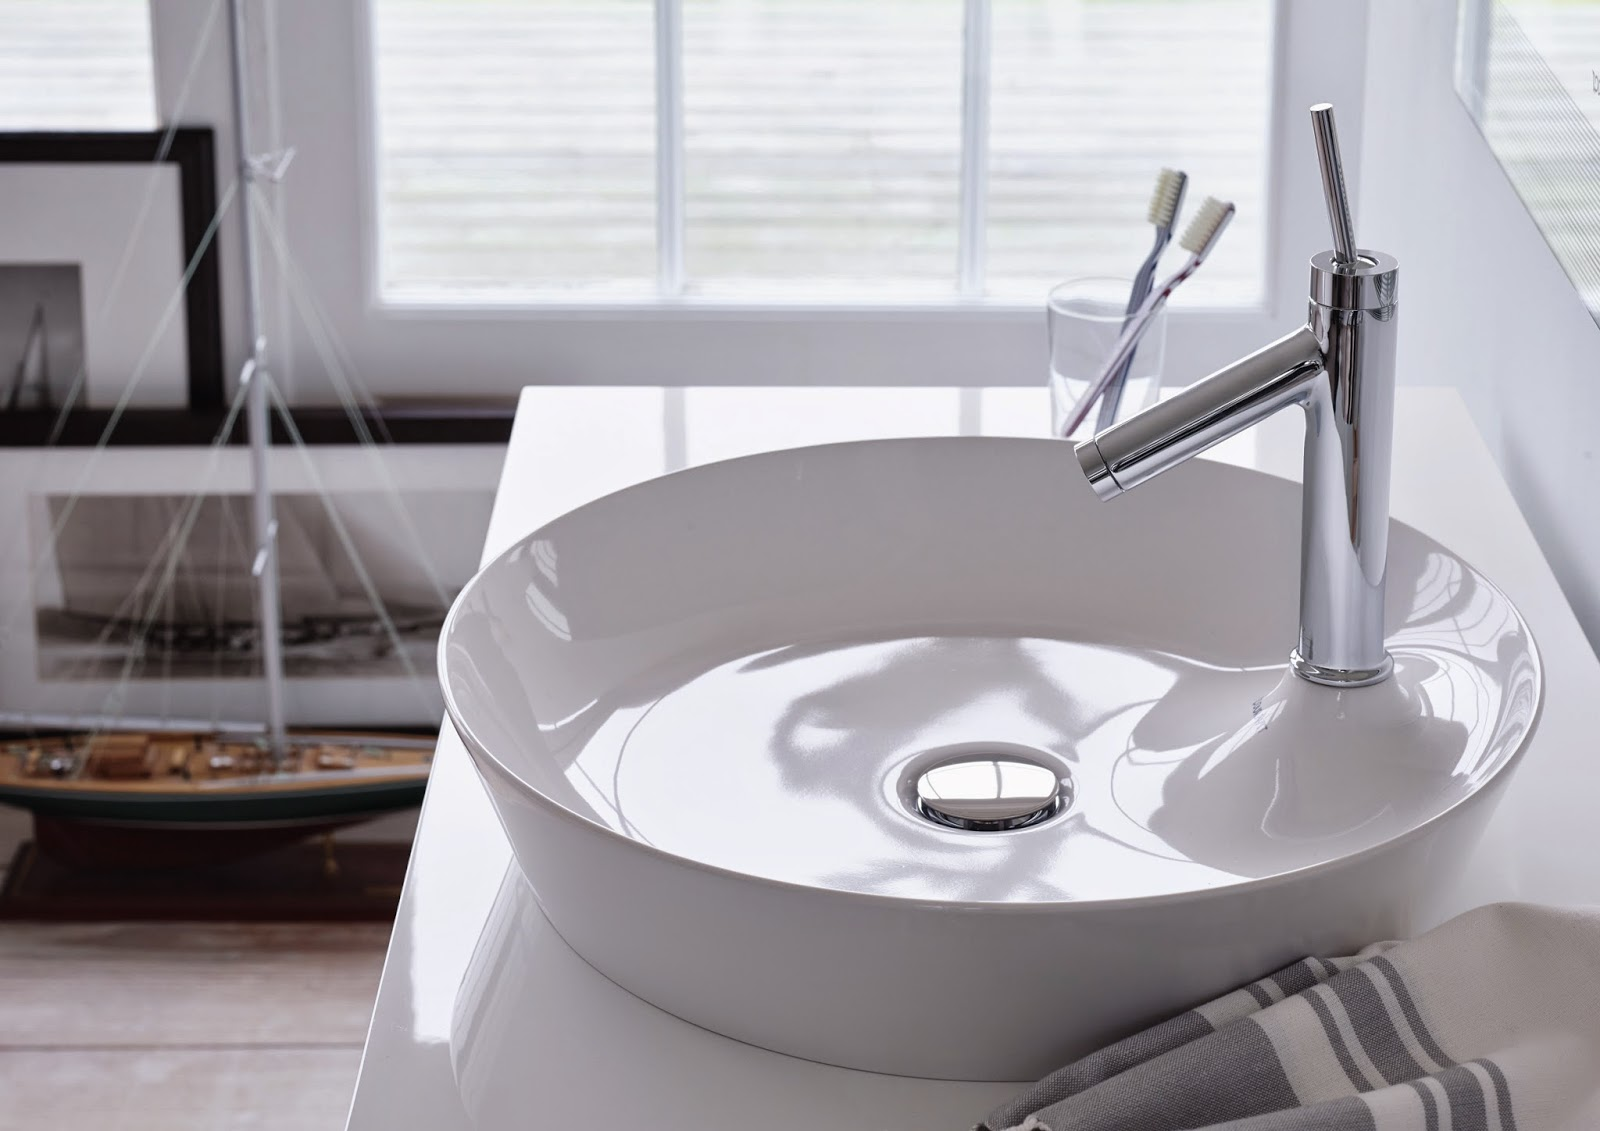 philippe starck 39 s cape cod collection by duravit soak in. Black Bedroom Furniture Sets. Home Design Ideas